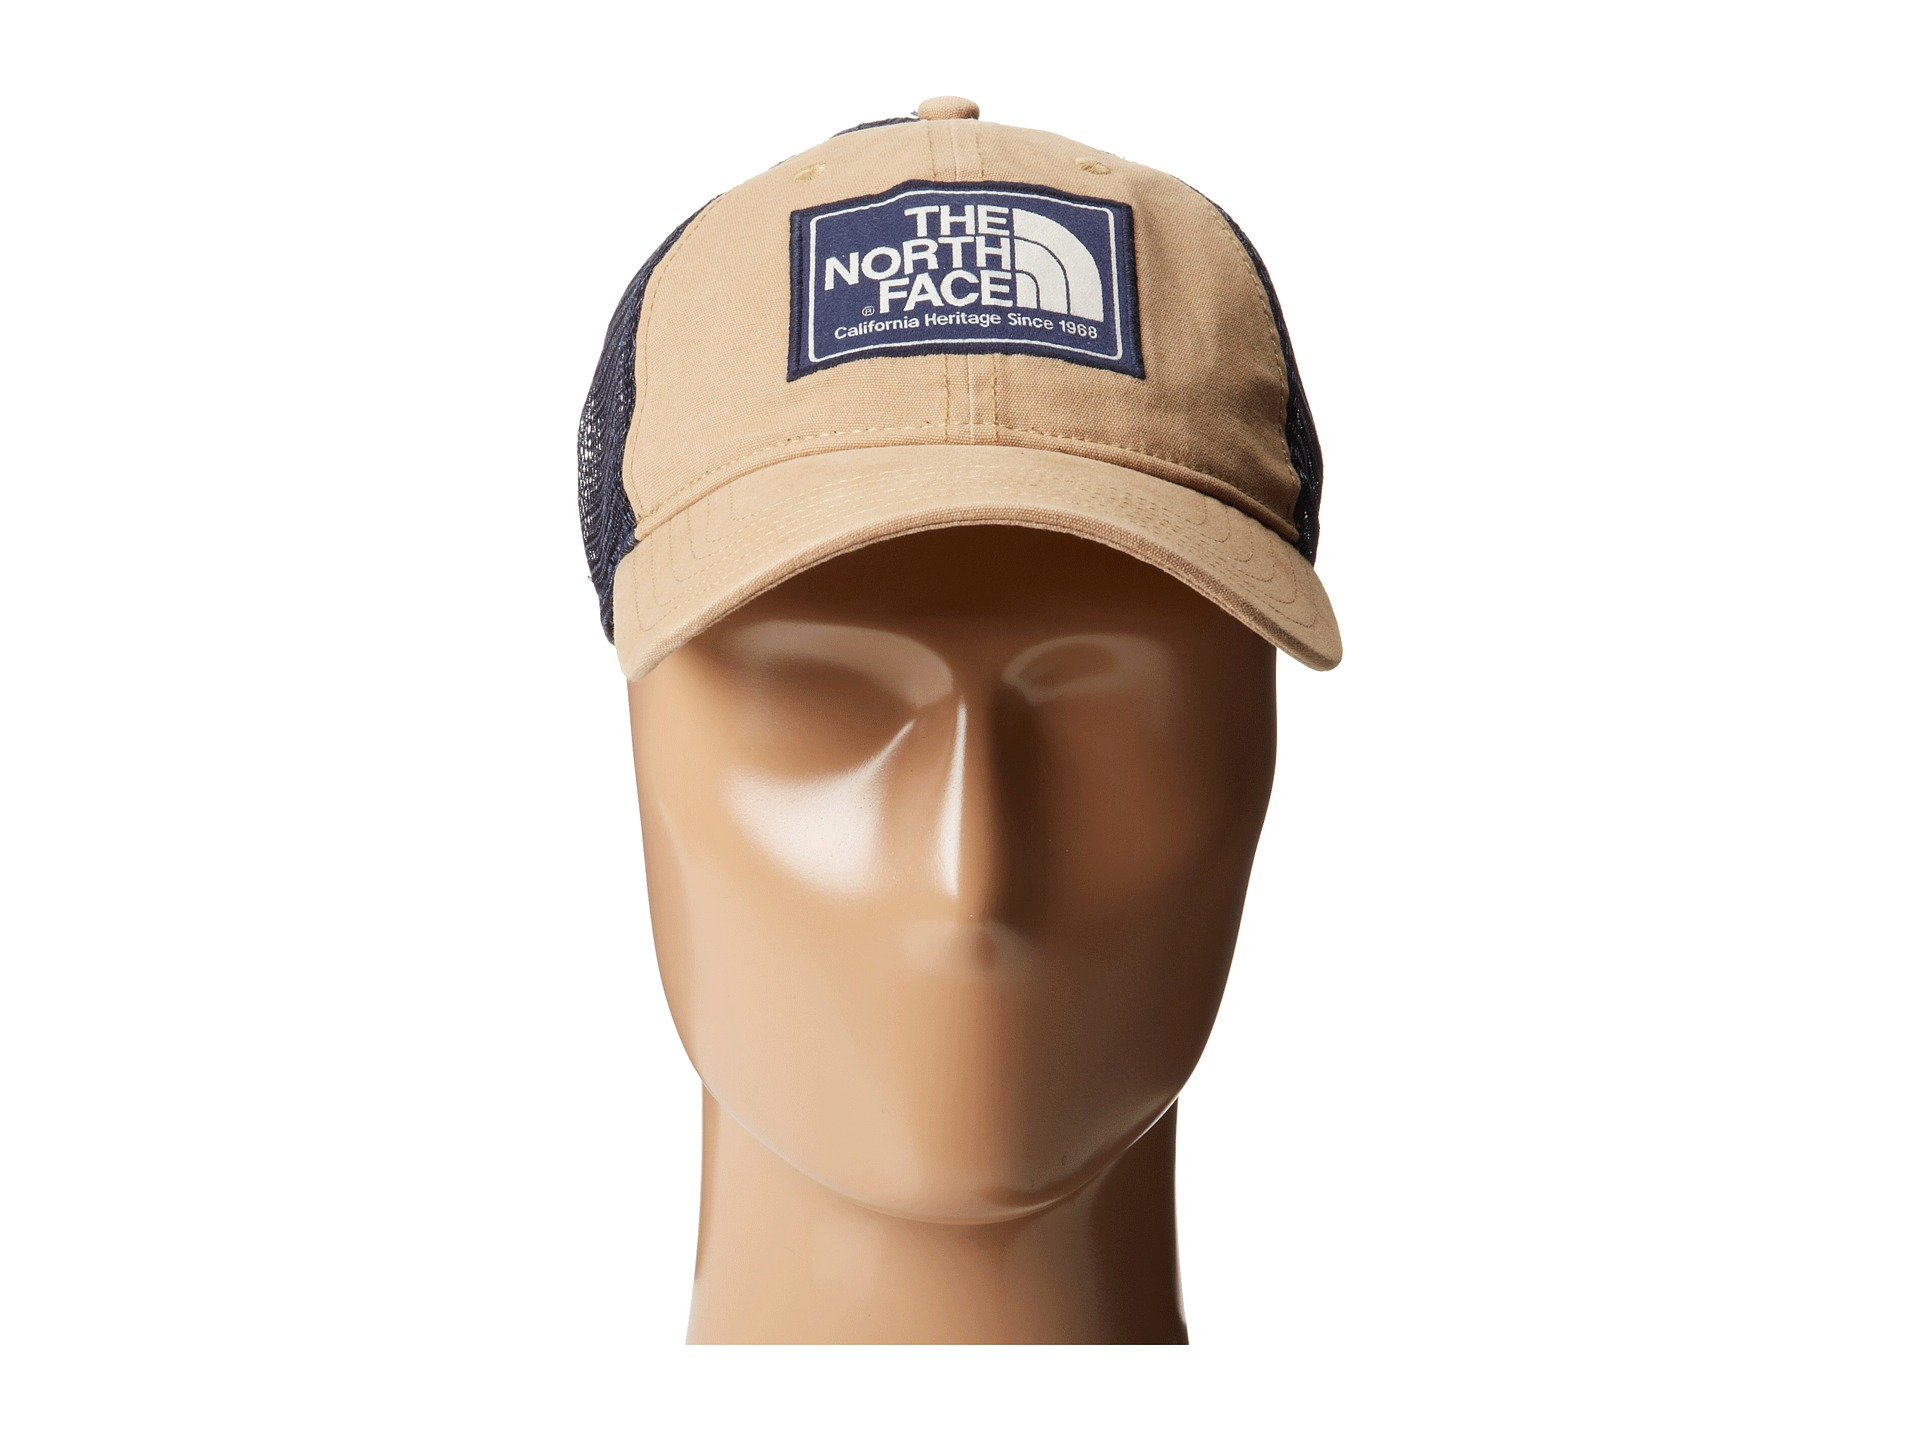 Lyst - The North Face Mudder Trucker Hat in Natural 98b074a0ef93